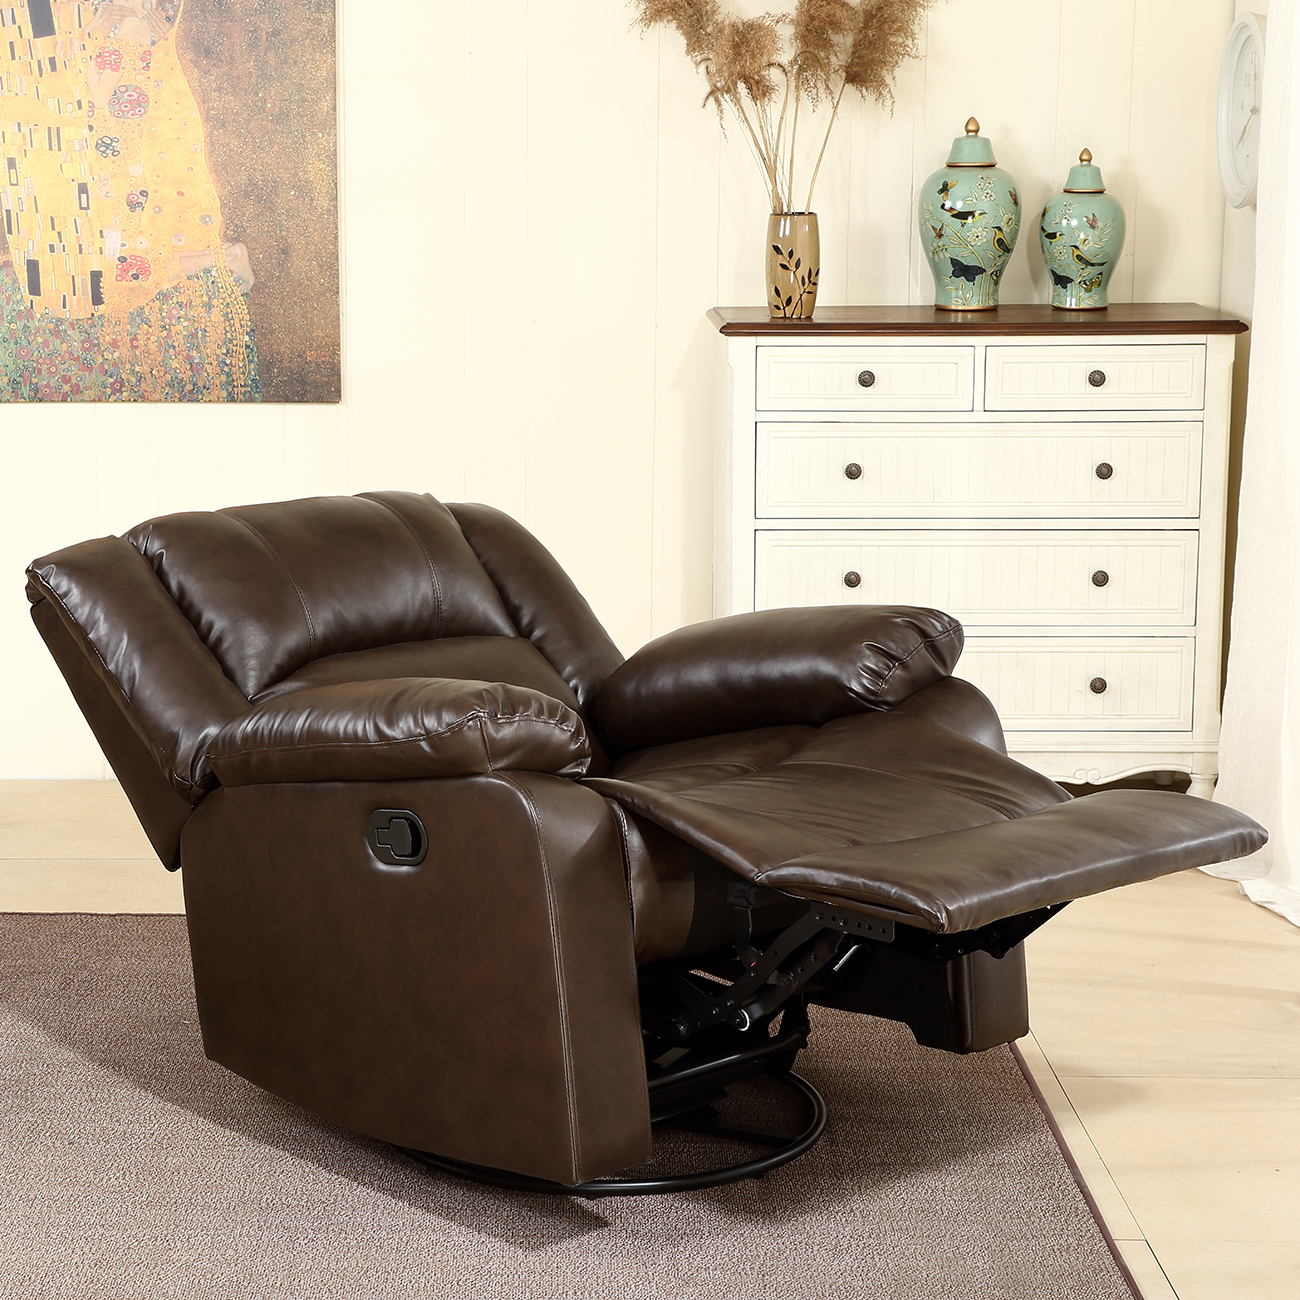 Swell Belleze Faux Leather Rocker Swivel Glider Recliner Living Room Chair Brown Gmtry Best Dining Table And Chair Ideas Images Gmtryco